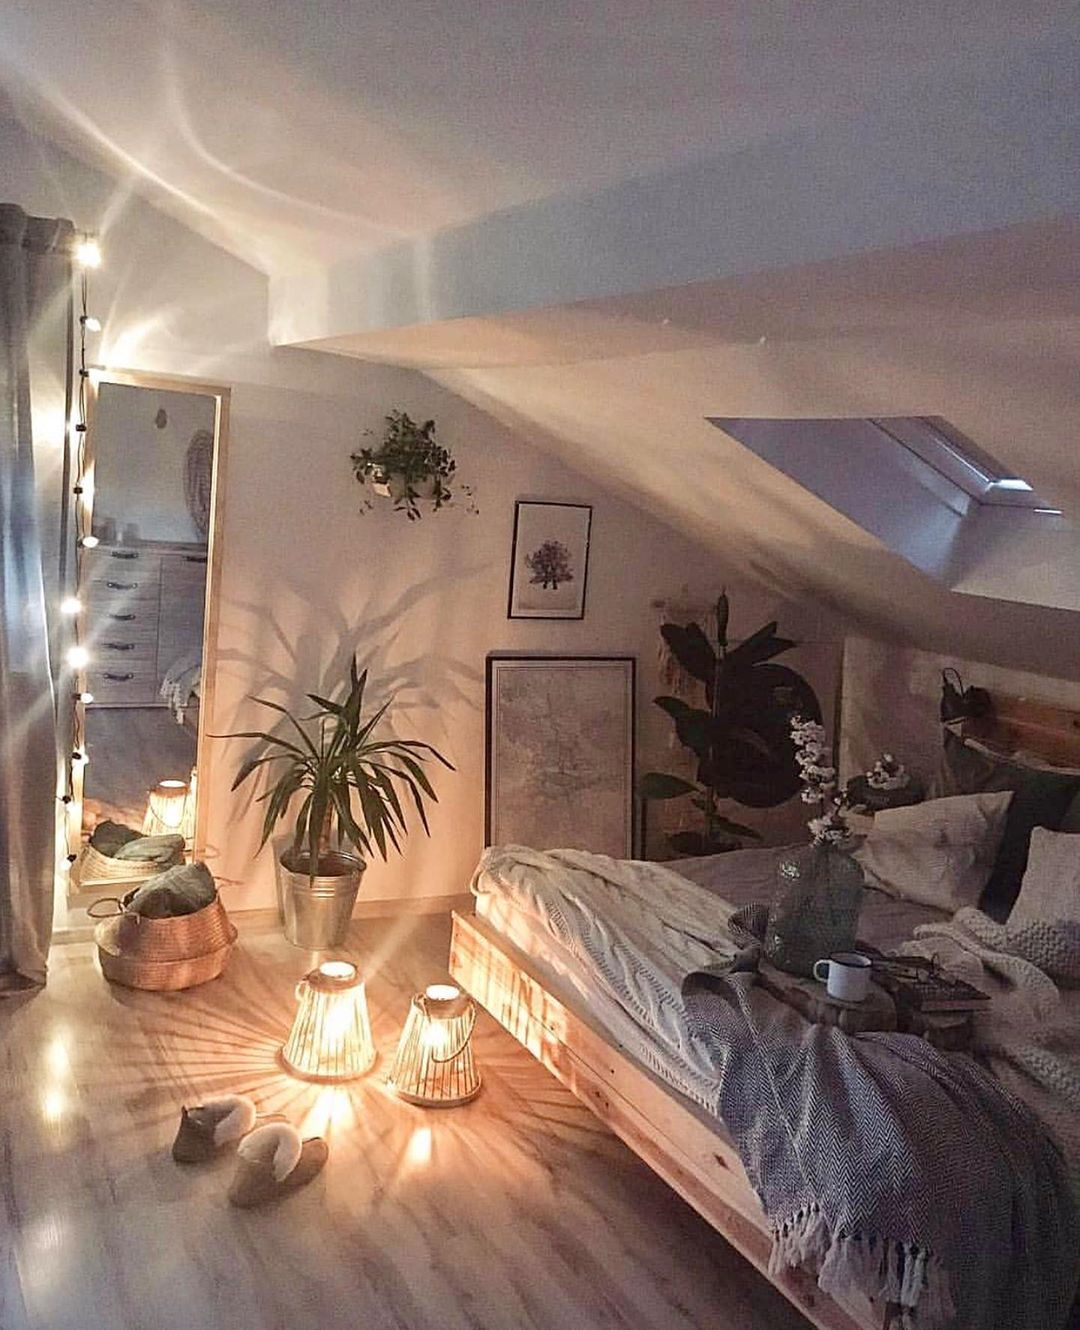 Home Decor Inspiration On Instagram So Cozy What Do You Love About This Room Follow Me My Homely Dec Bedroom Layouts Modern Bedroom Bedroom Design